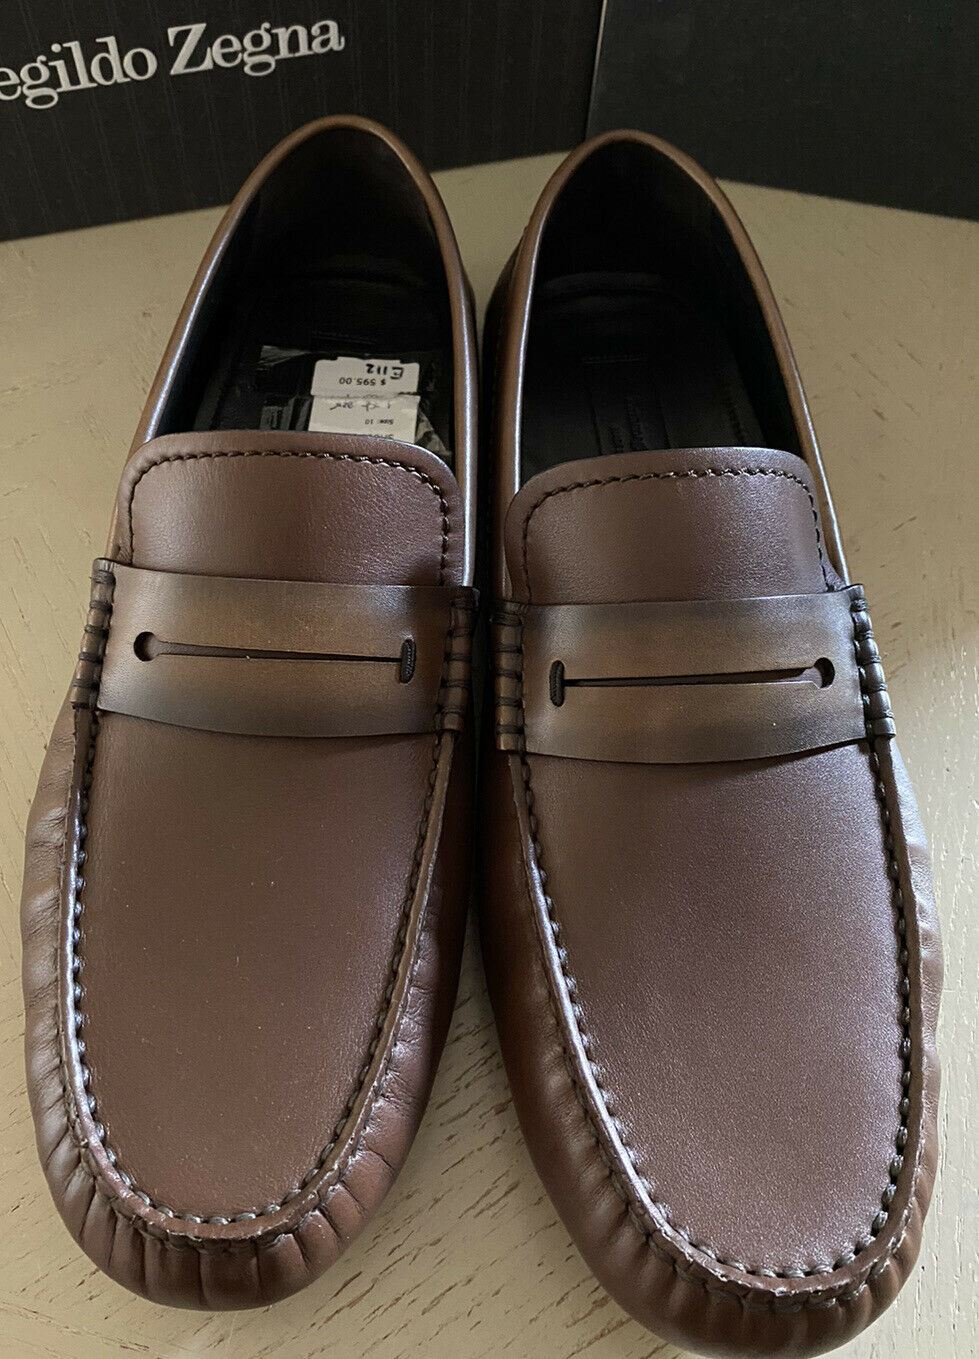 New $595 Ermenegildo Zegna Leather Driver Shoes MD Brown 11 US ( 44 Eu ) Italy